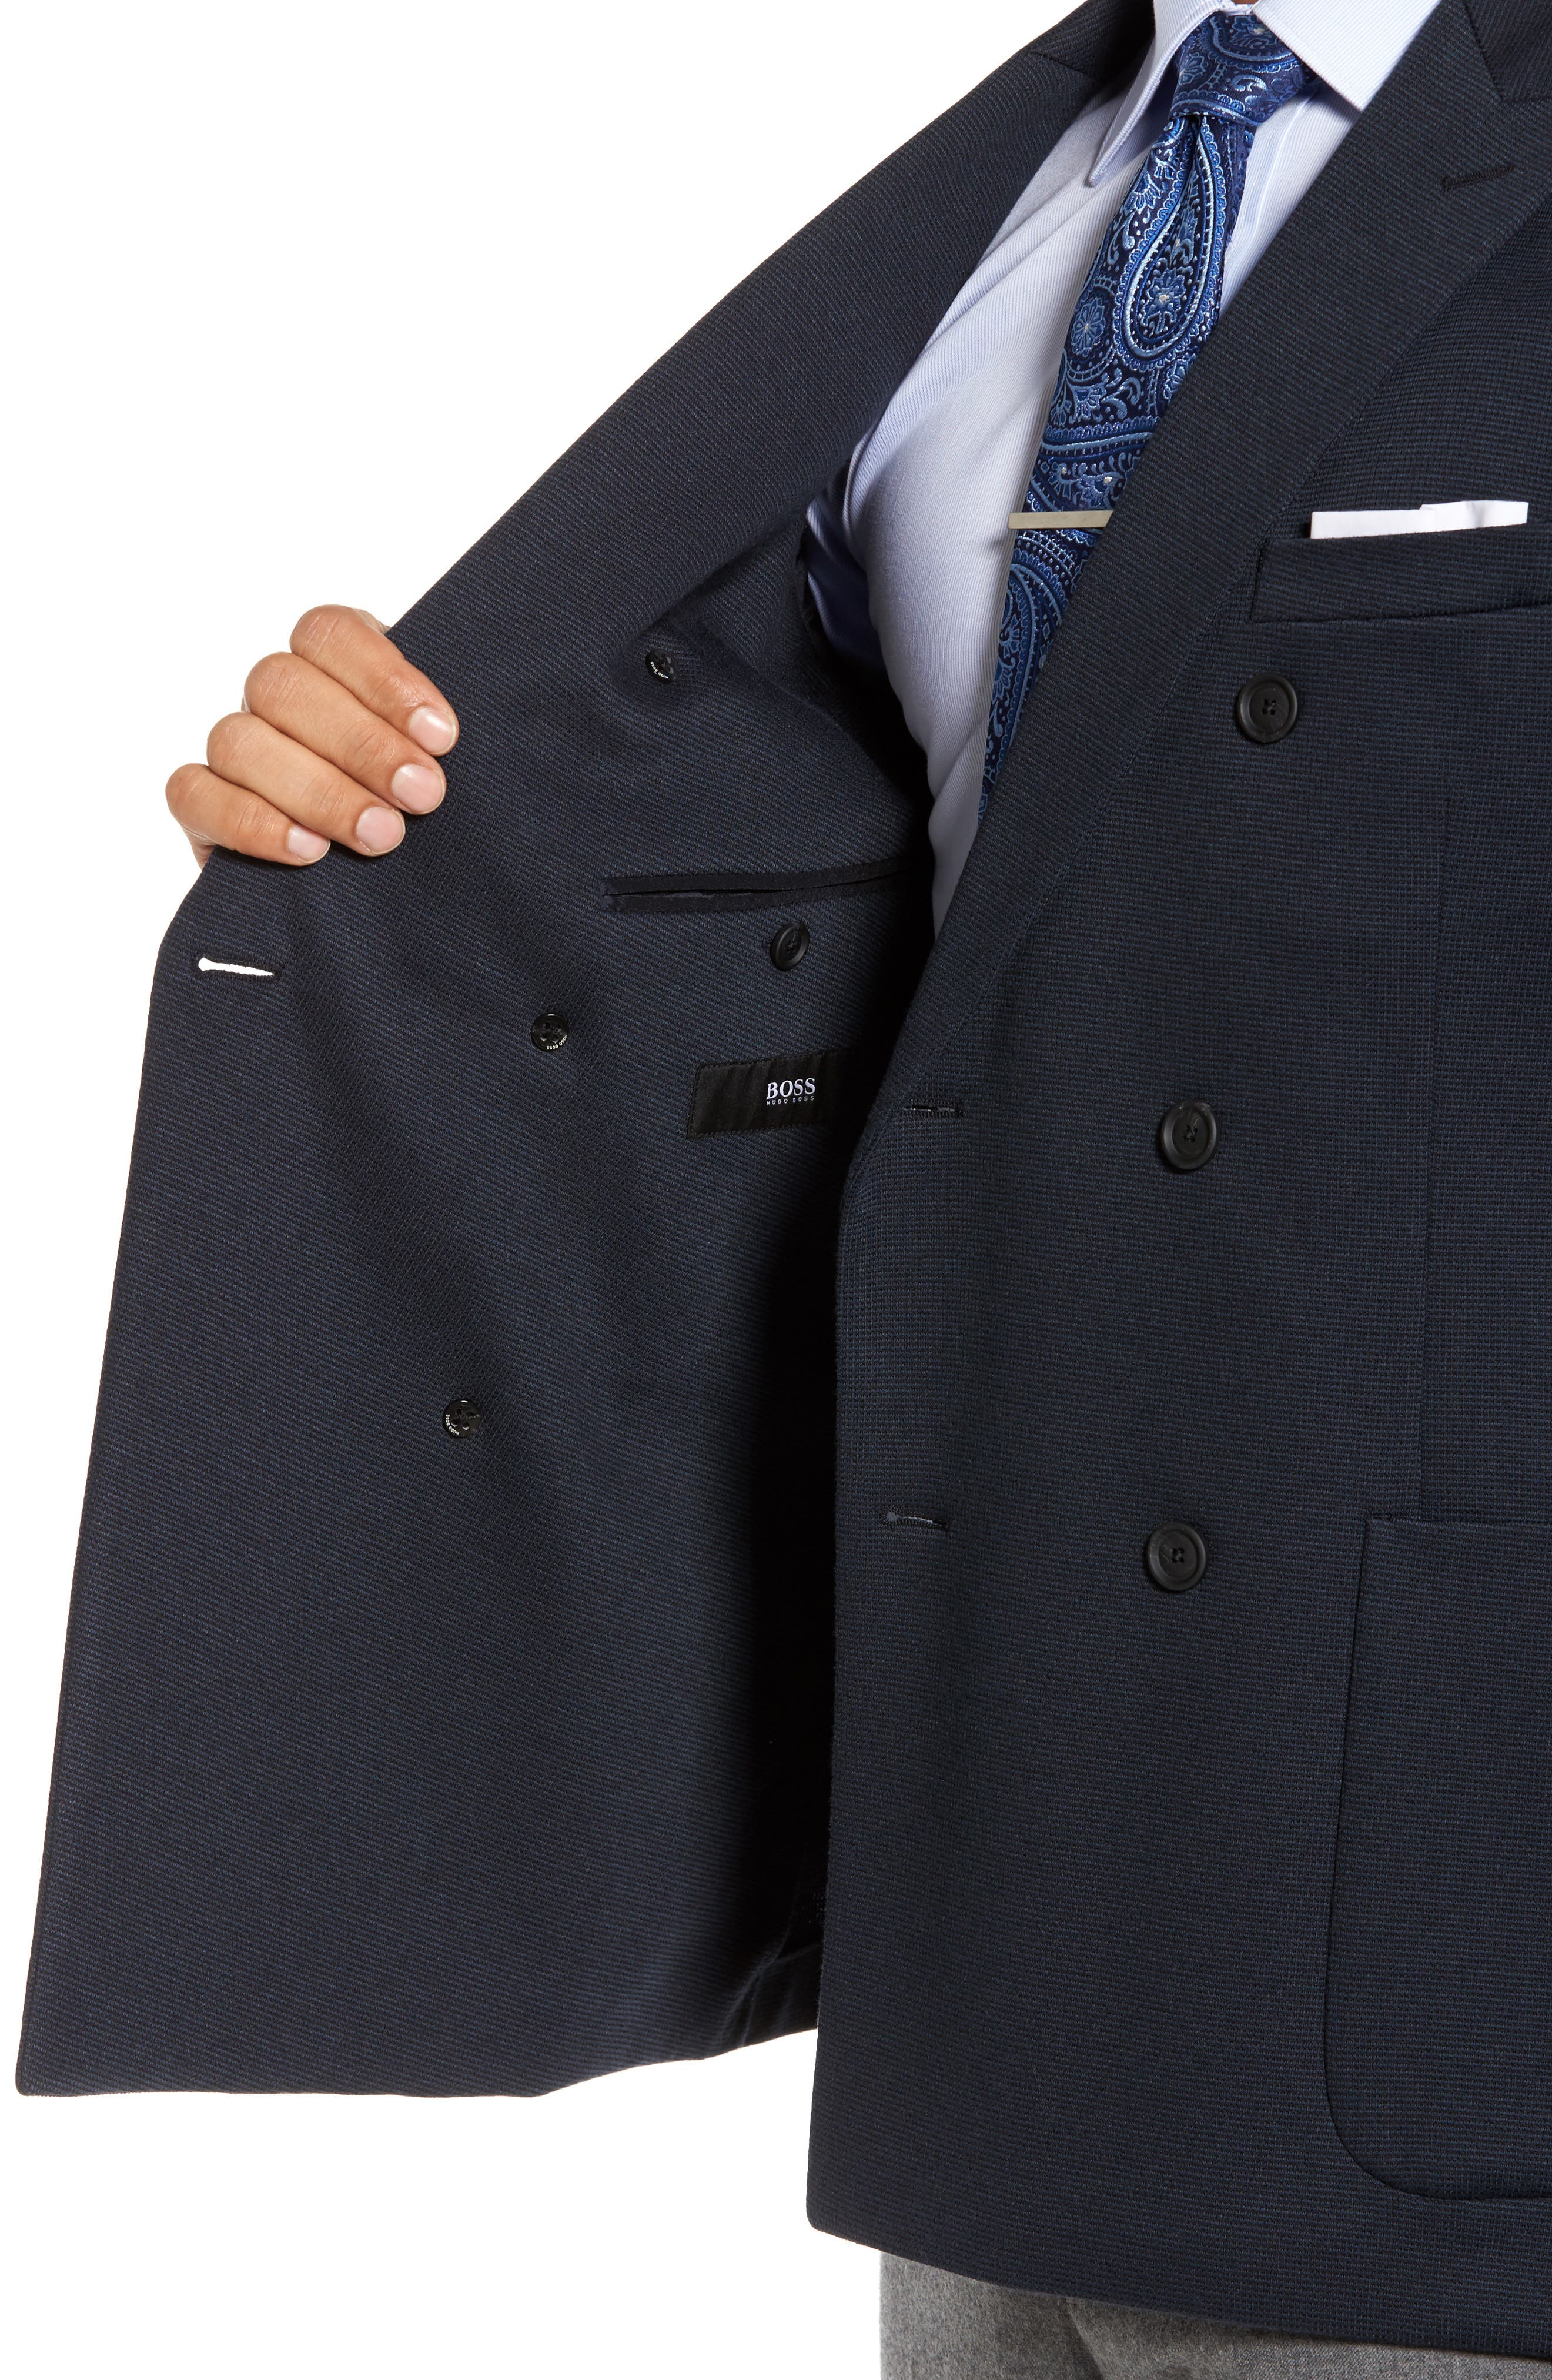 Nayler-J Trim Fit Double-Breasted Blazer,                             Alternate thumbnail 4, color,                             Navy